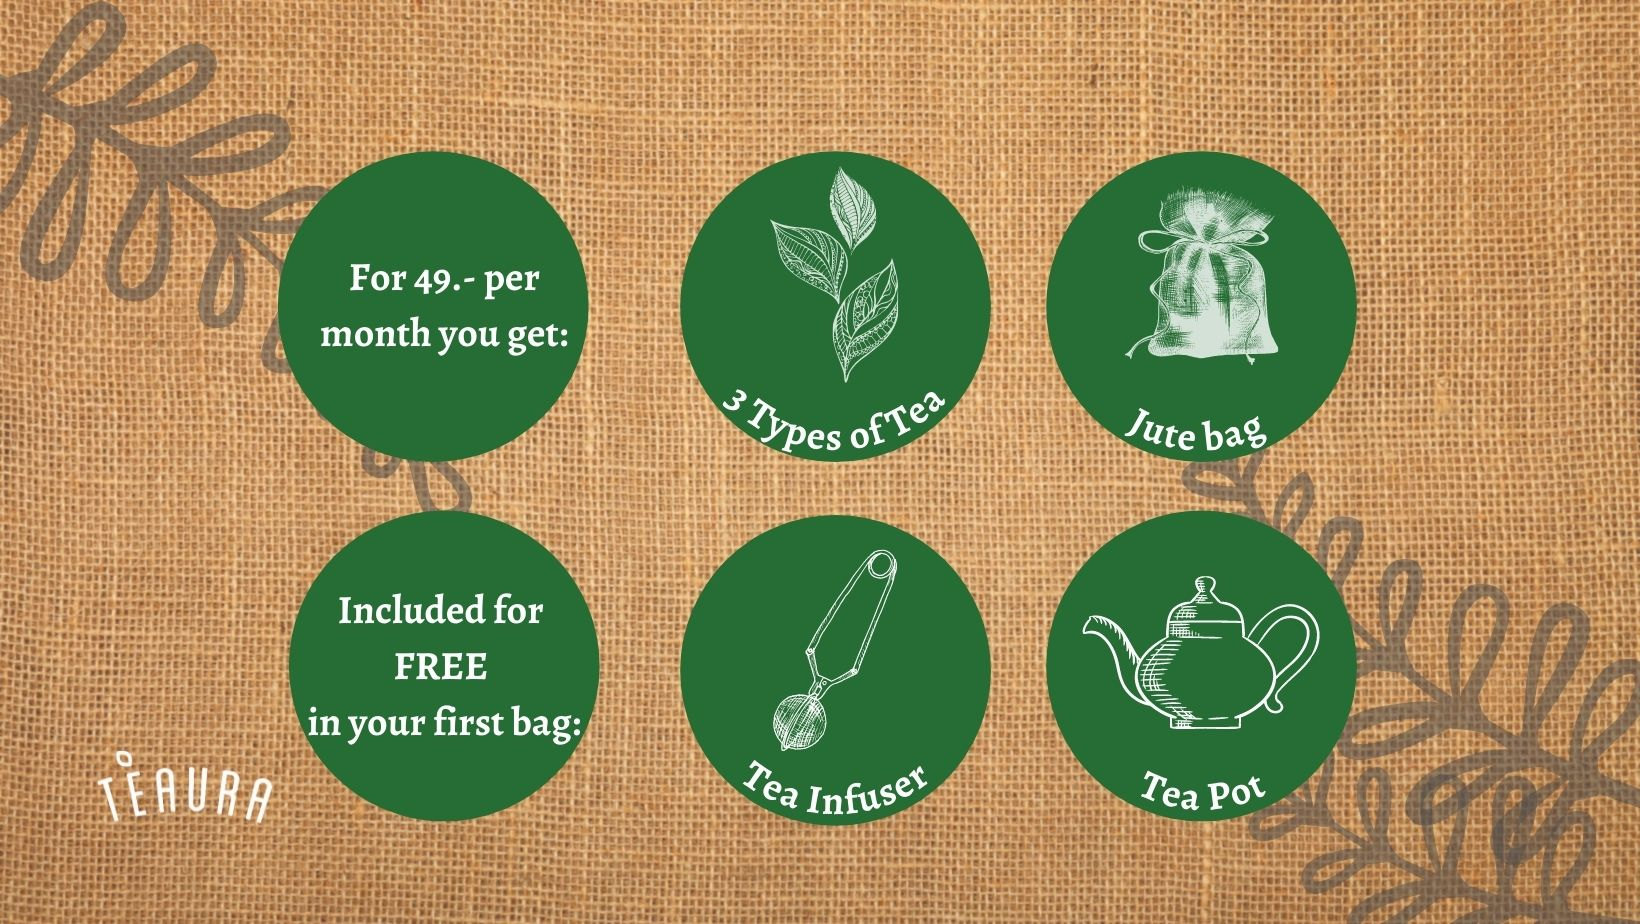 Jute Bag tea Subscription includes for 49.- per month 3 teas, a jute bag and get an infuser and tea pot free in your first bag